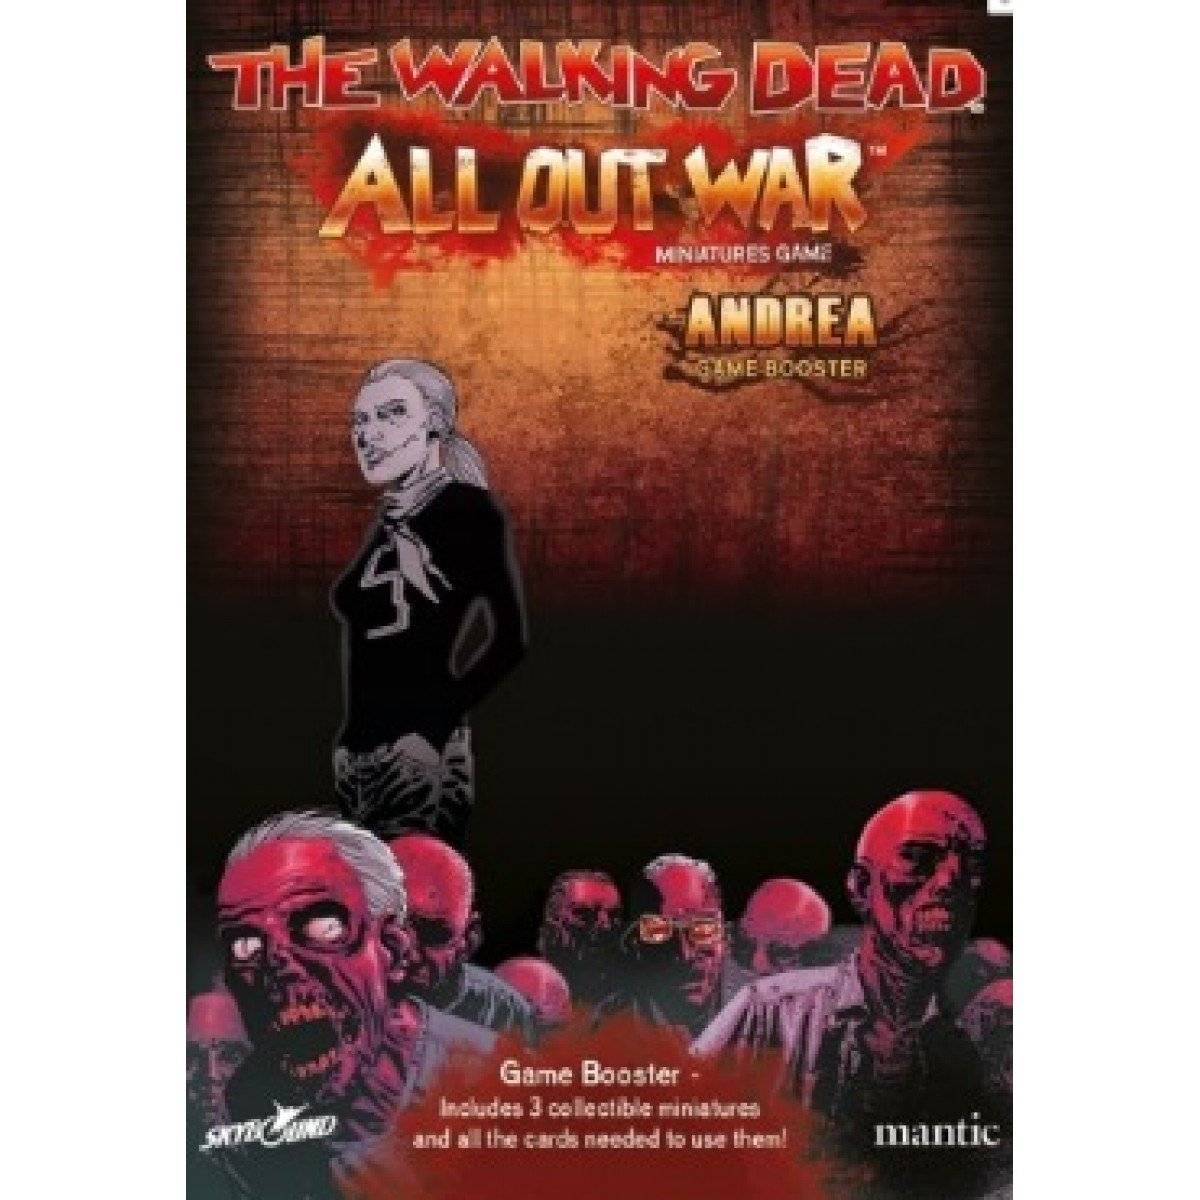 The Walking Dead: All Out War – Andrea Booster